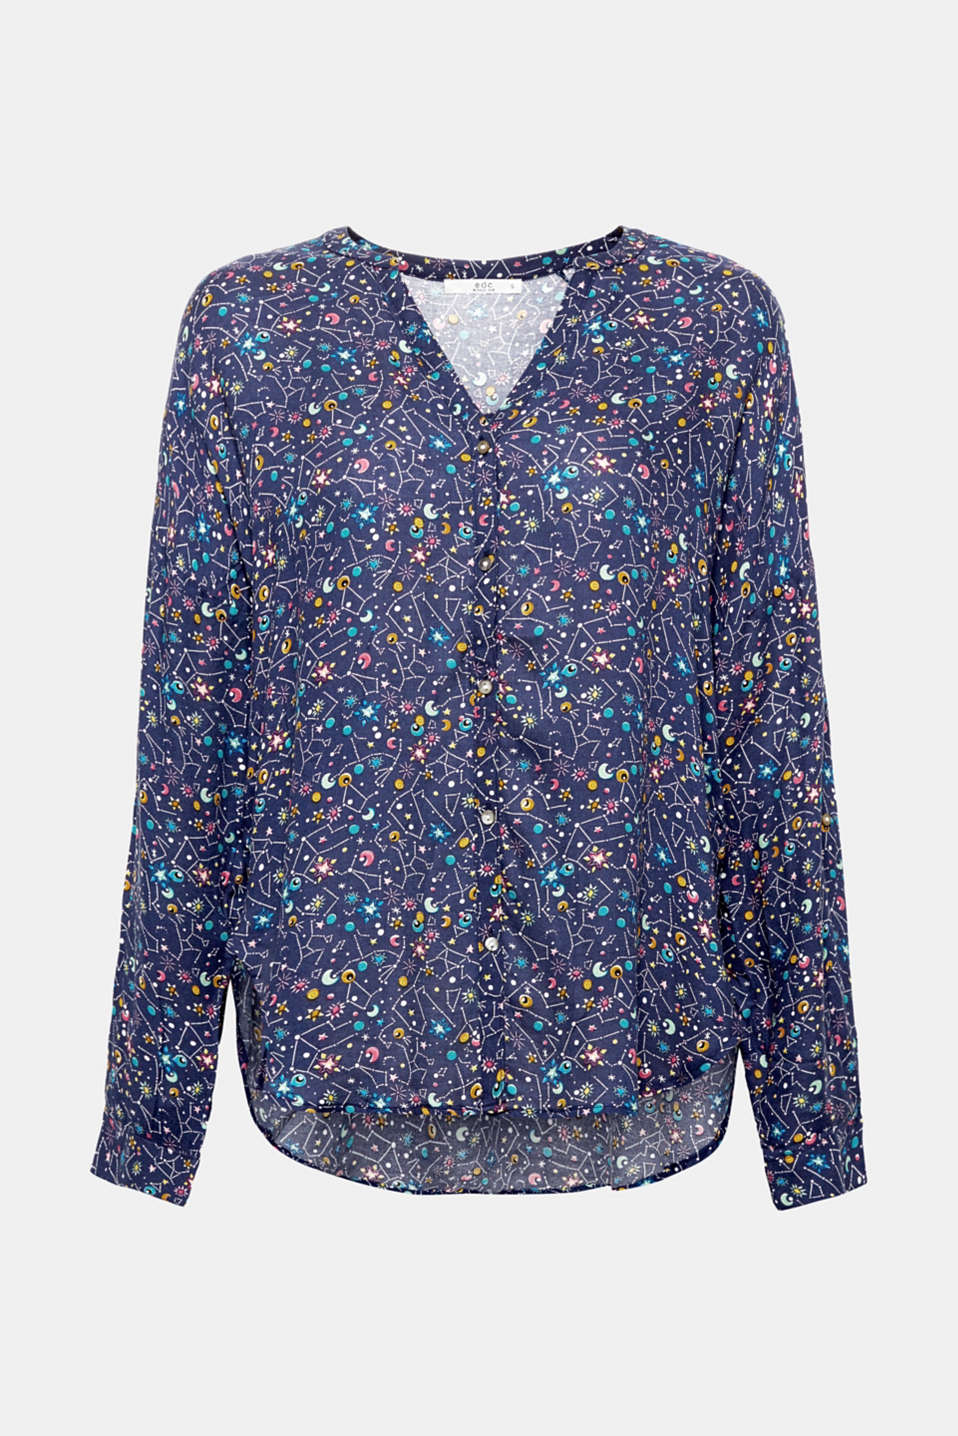 Casual favourite: With a colourful print, adjustable turn-up sleeves and a fashionable high-low hem, this blouse has everything a casual piece needs!